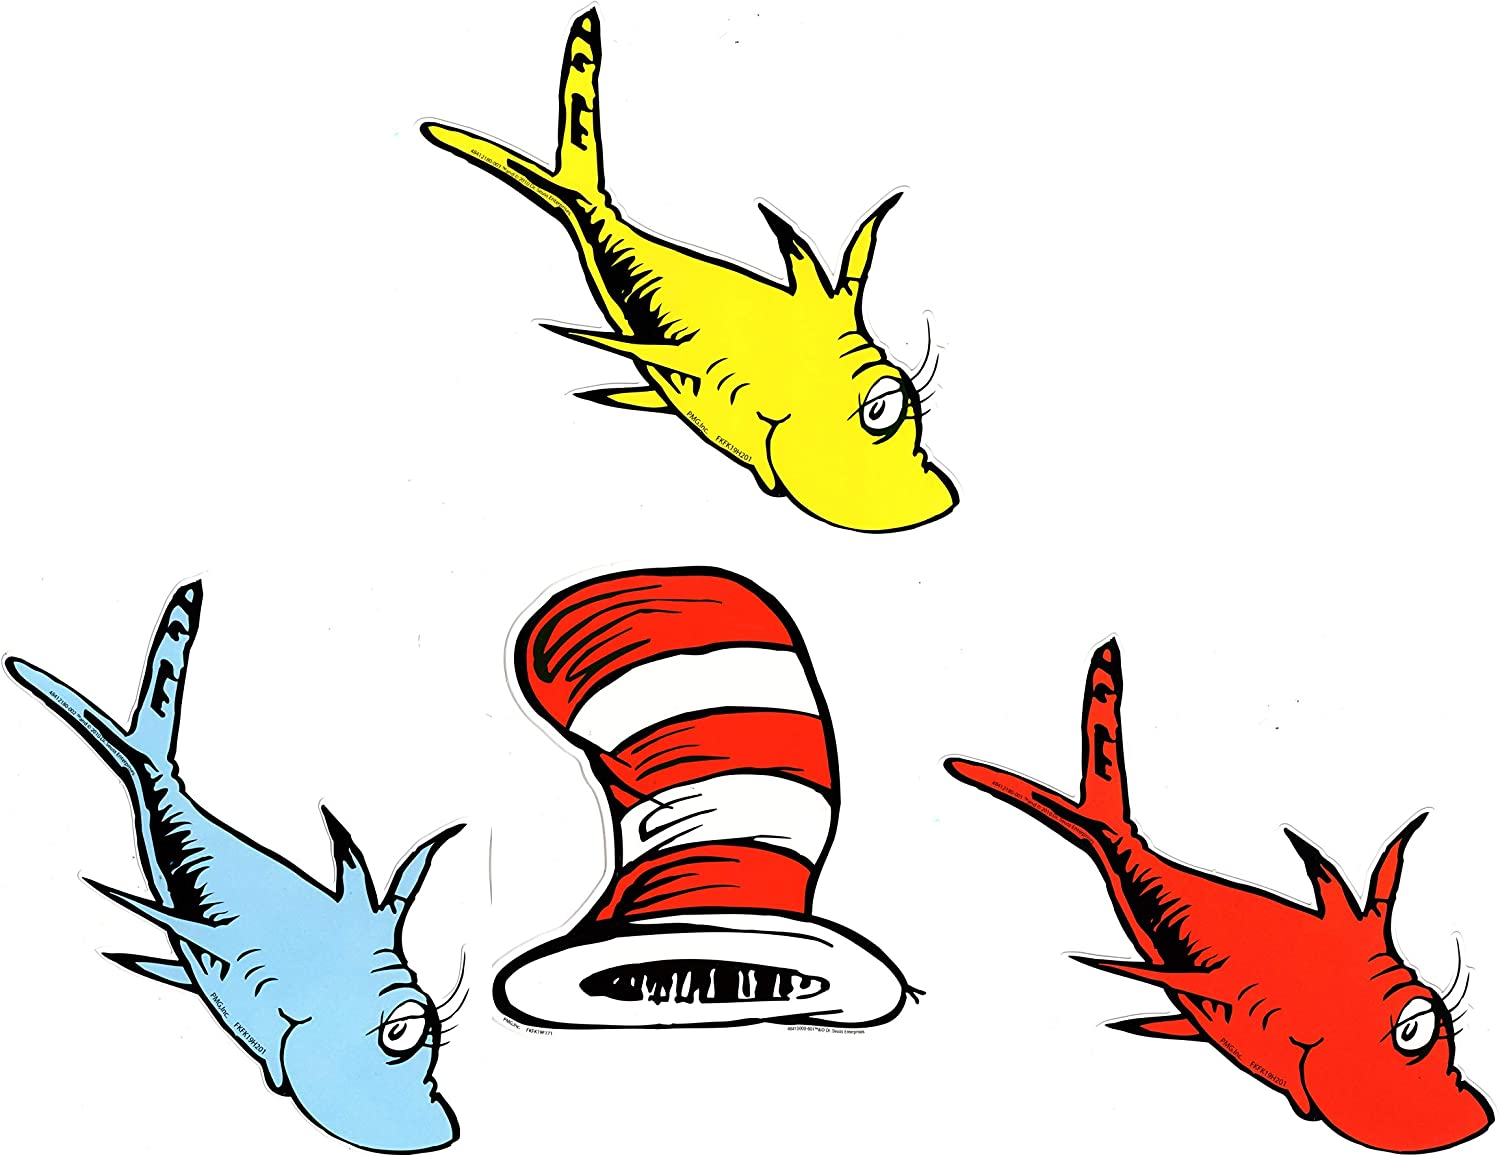 Eureka Back to School Dr Two Fish Paper Cut Out Classroom Decorations 72 pc Bundle Seuss Cat in The Hat and One Fish